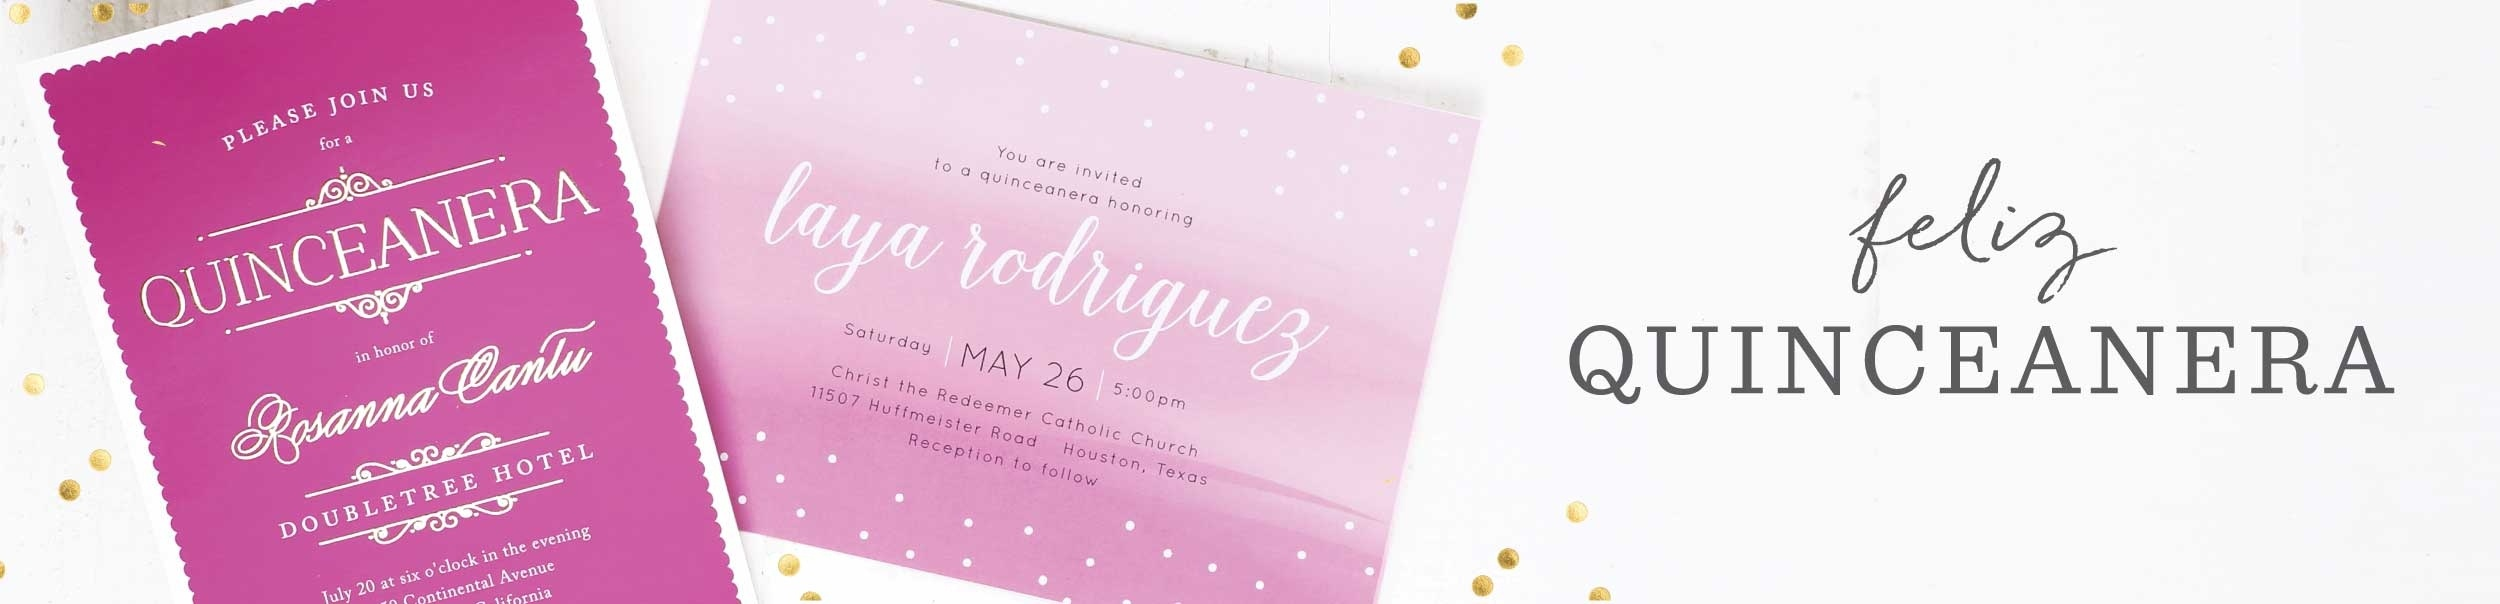 Quinceañera Invitations | Match Your Color & Style Free - Basic Invite‎ - Free Printable Quinceanera Invitations